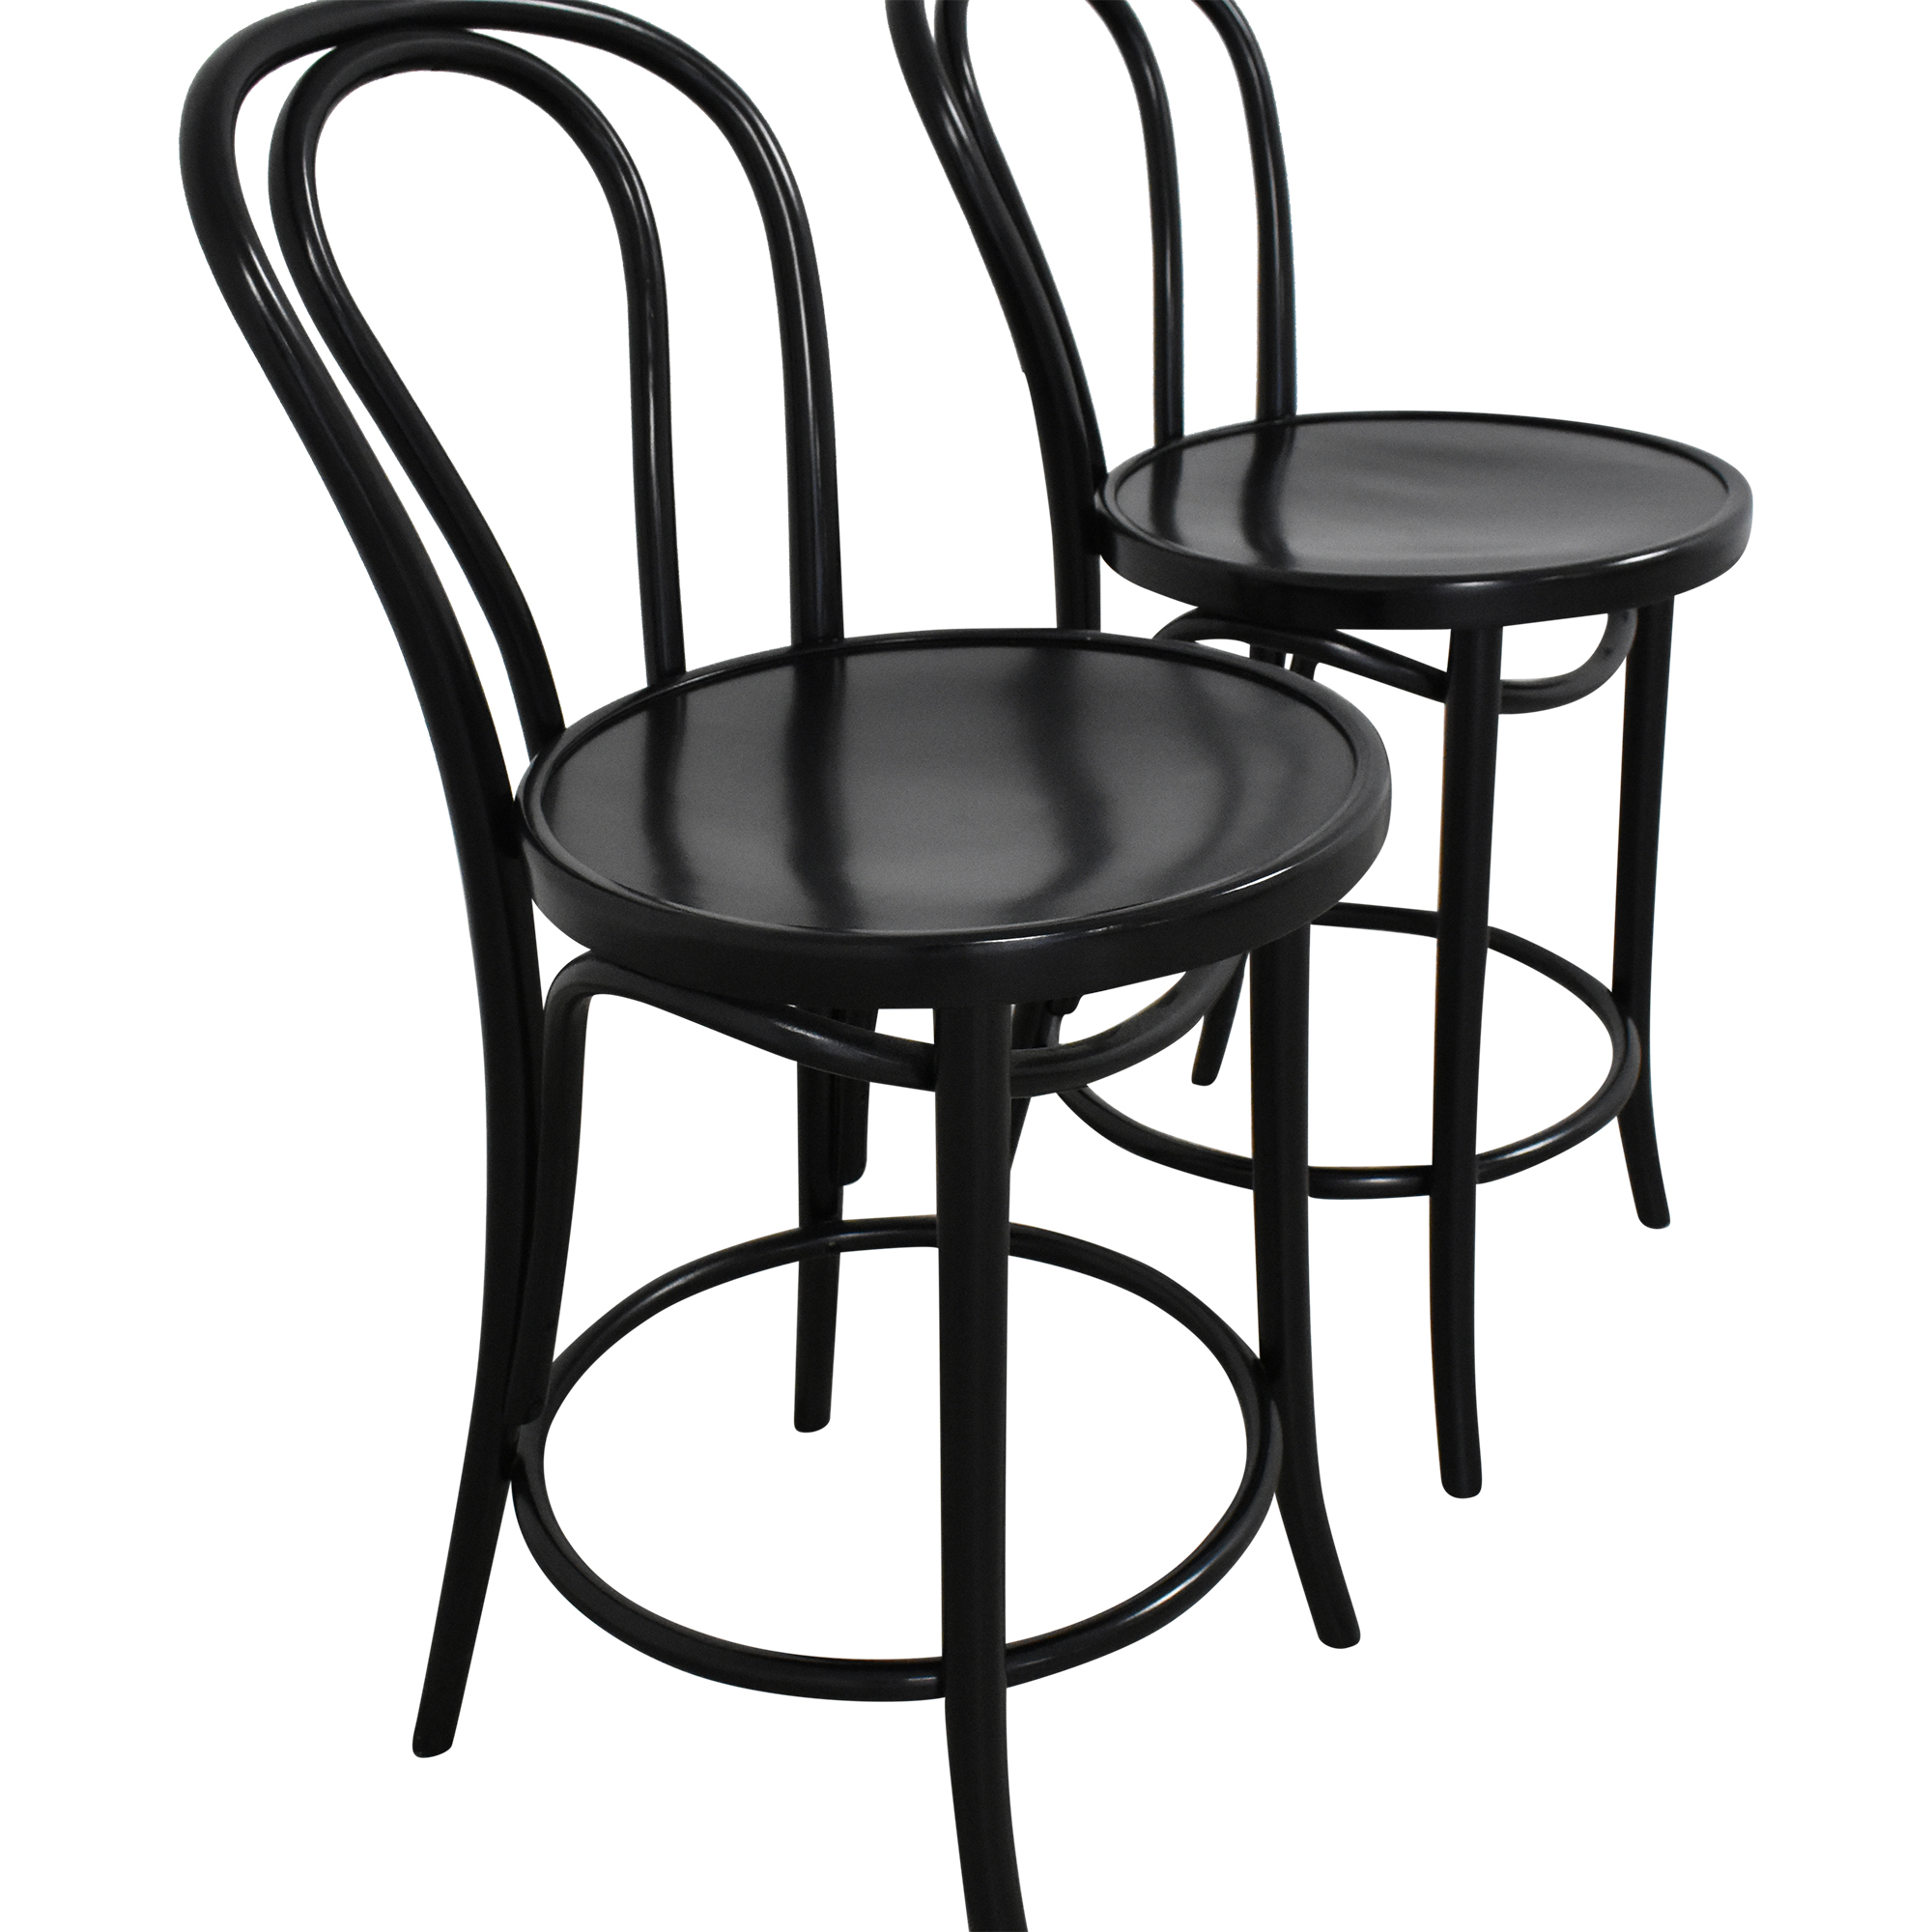 buy Crate & Barrel Vienna Counter Stools Crate & Barrel Chairs